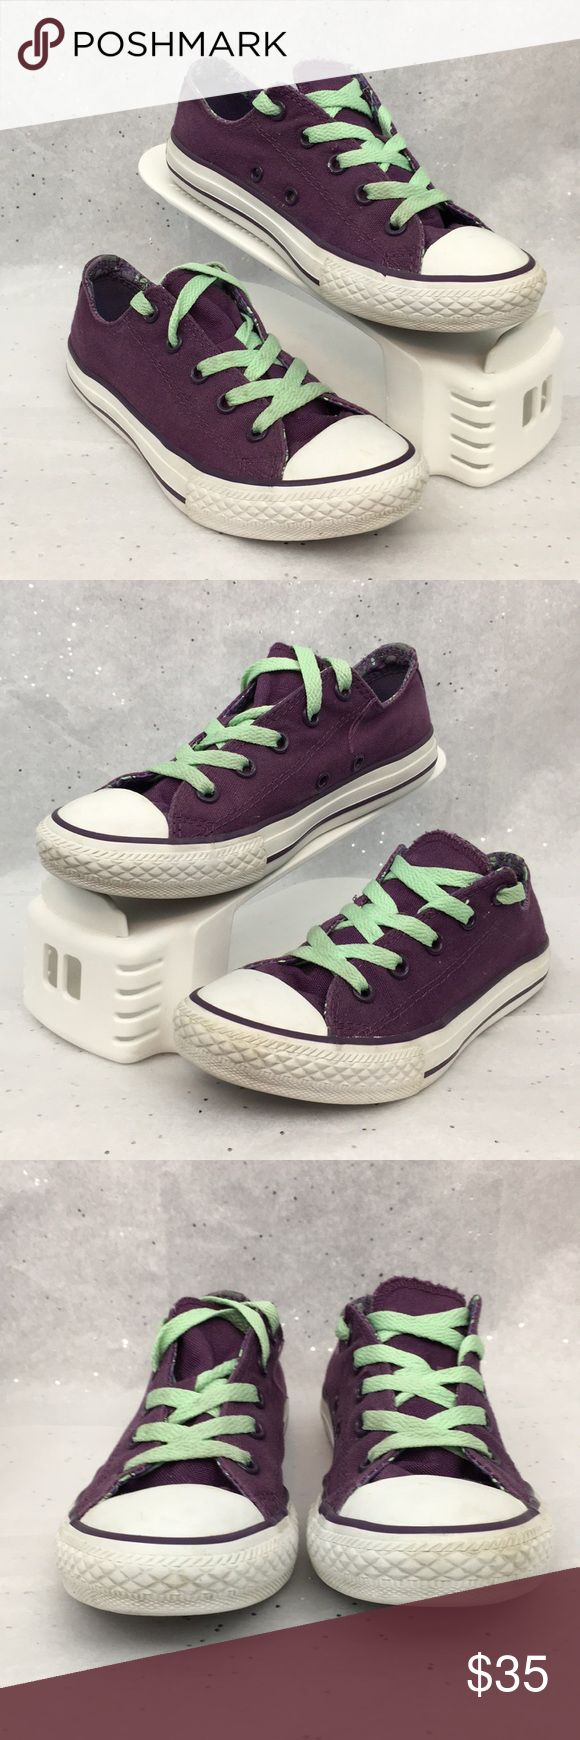 """Converse double tongue Sk8 shoes Pre owned in excellent condition!  These are just awesome purple double tongue """"puzzle"""" shoes.  Please zoom in and check them out. These are hard to find!  Smoke and pet free house. Converse Shoes Sneakers"""